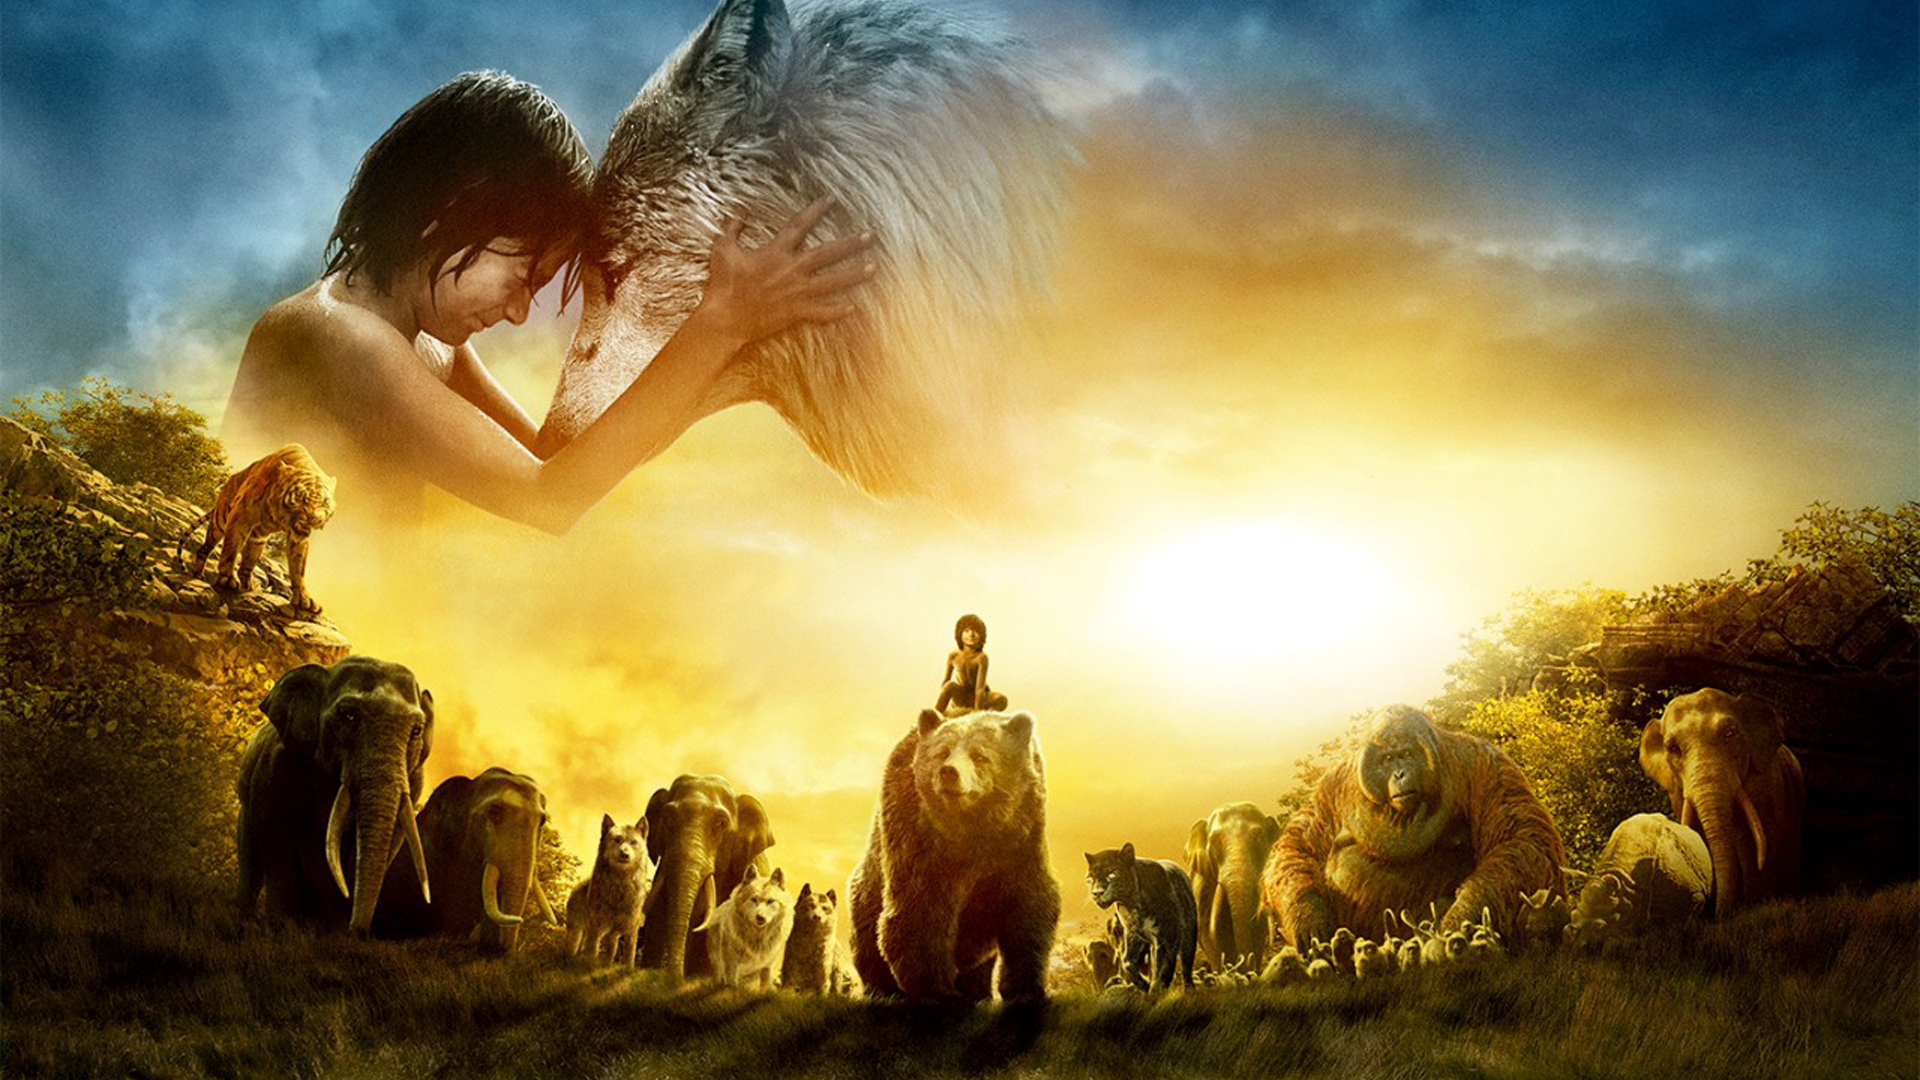 the jungle book wallpapers high quality download free